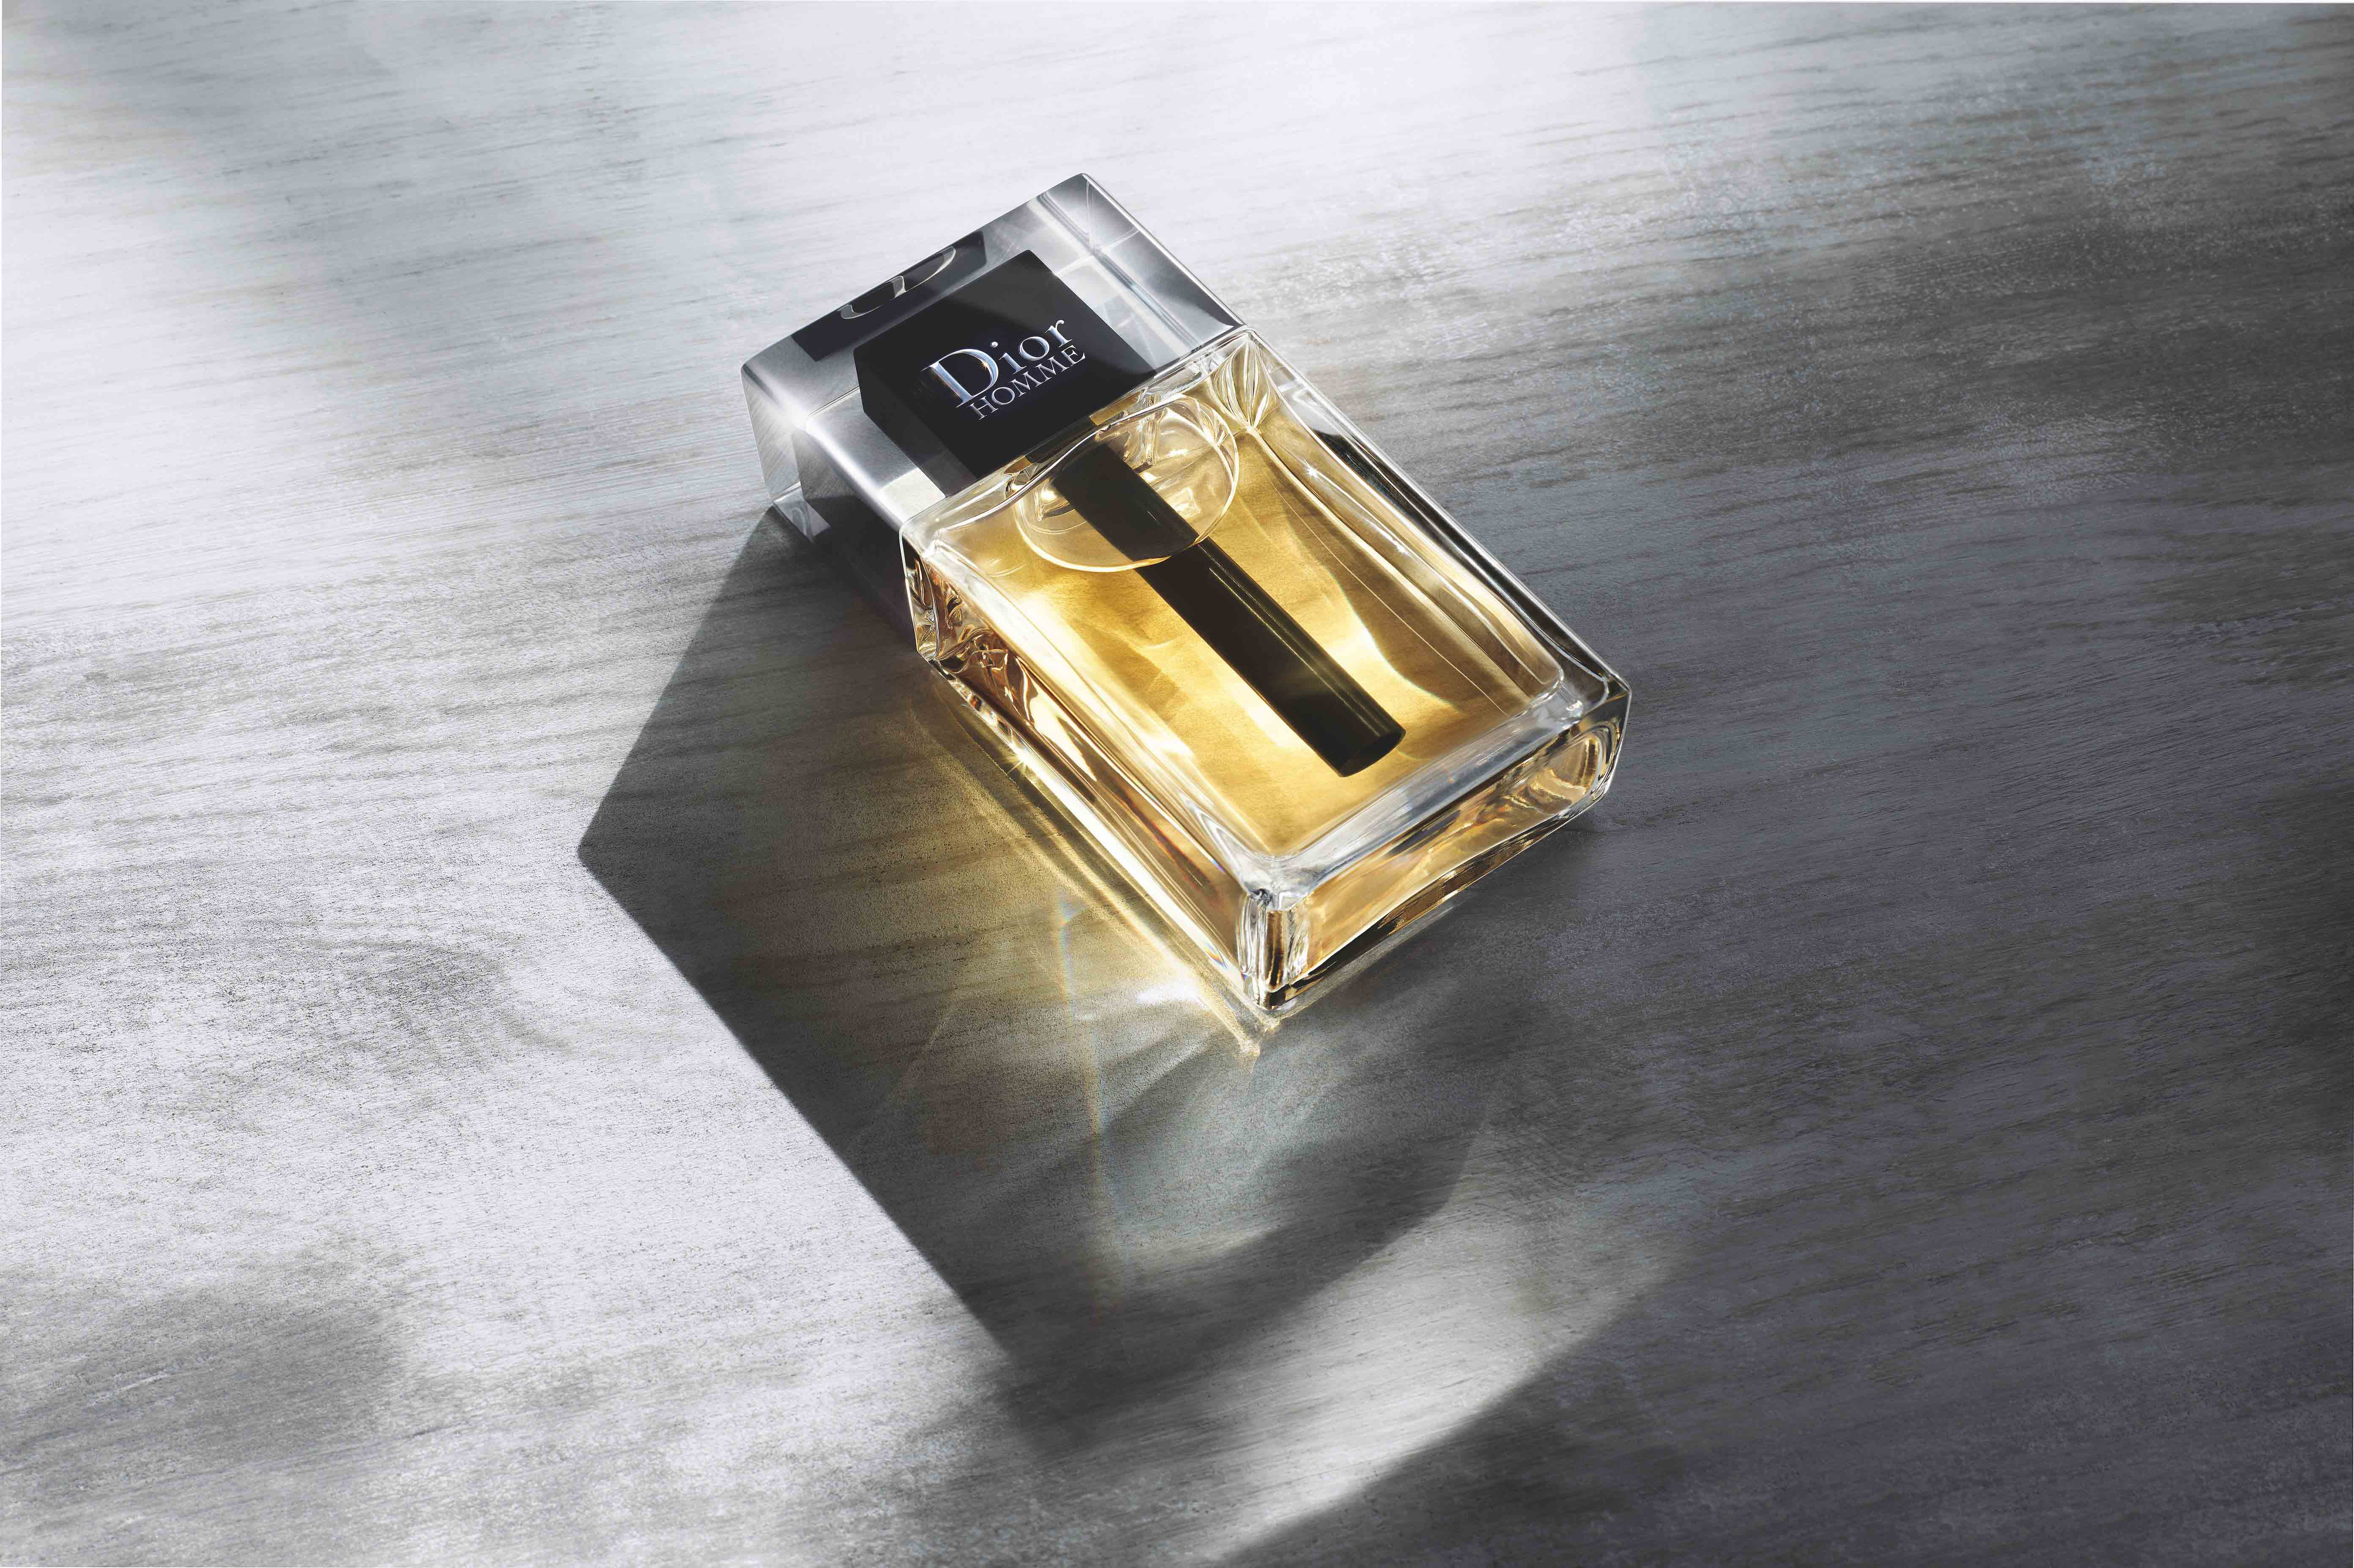 Grooming product: Fragrance, Dior Homme EDT 2020